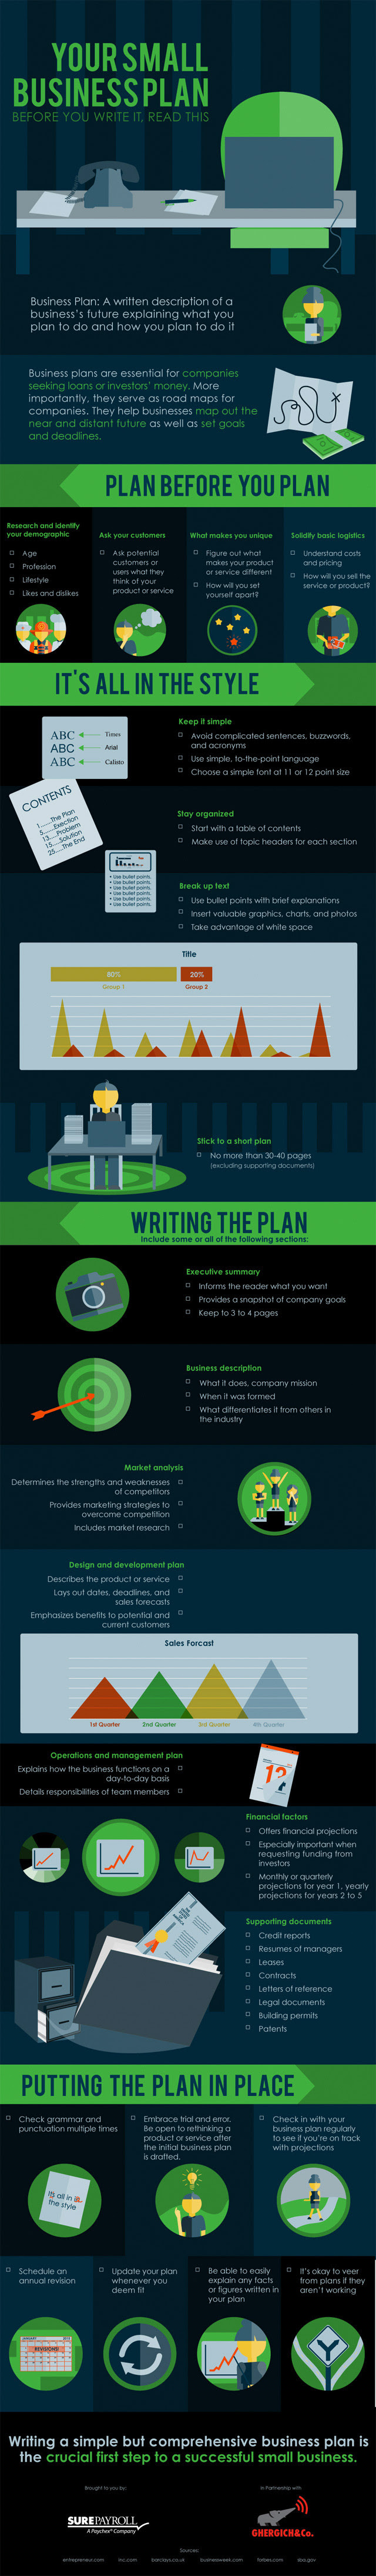 Infographic: Your Small Business Plan: Before You Write It, Read This